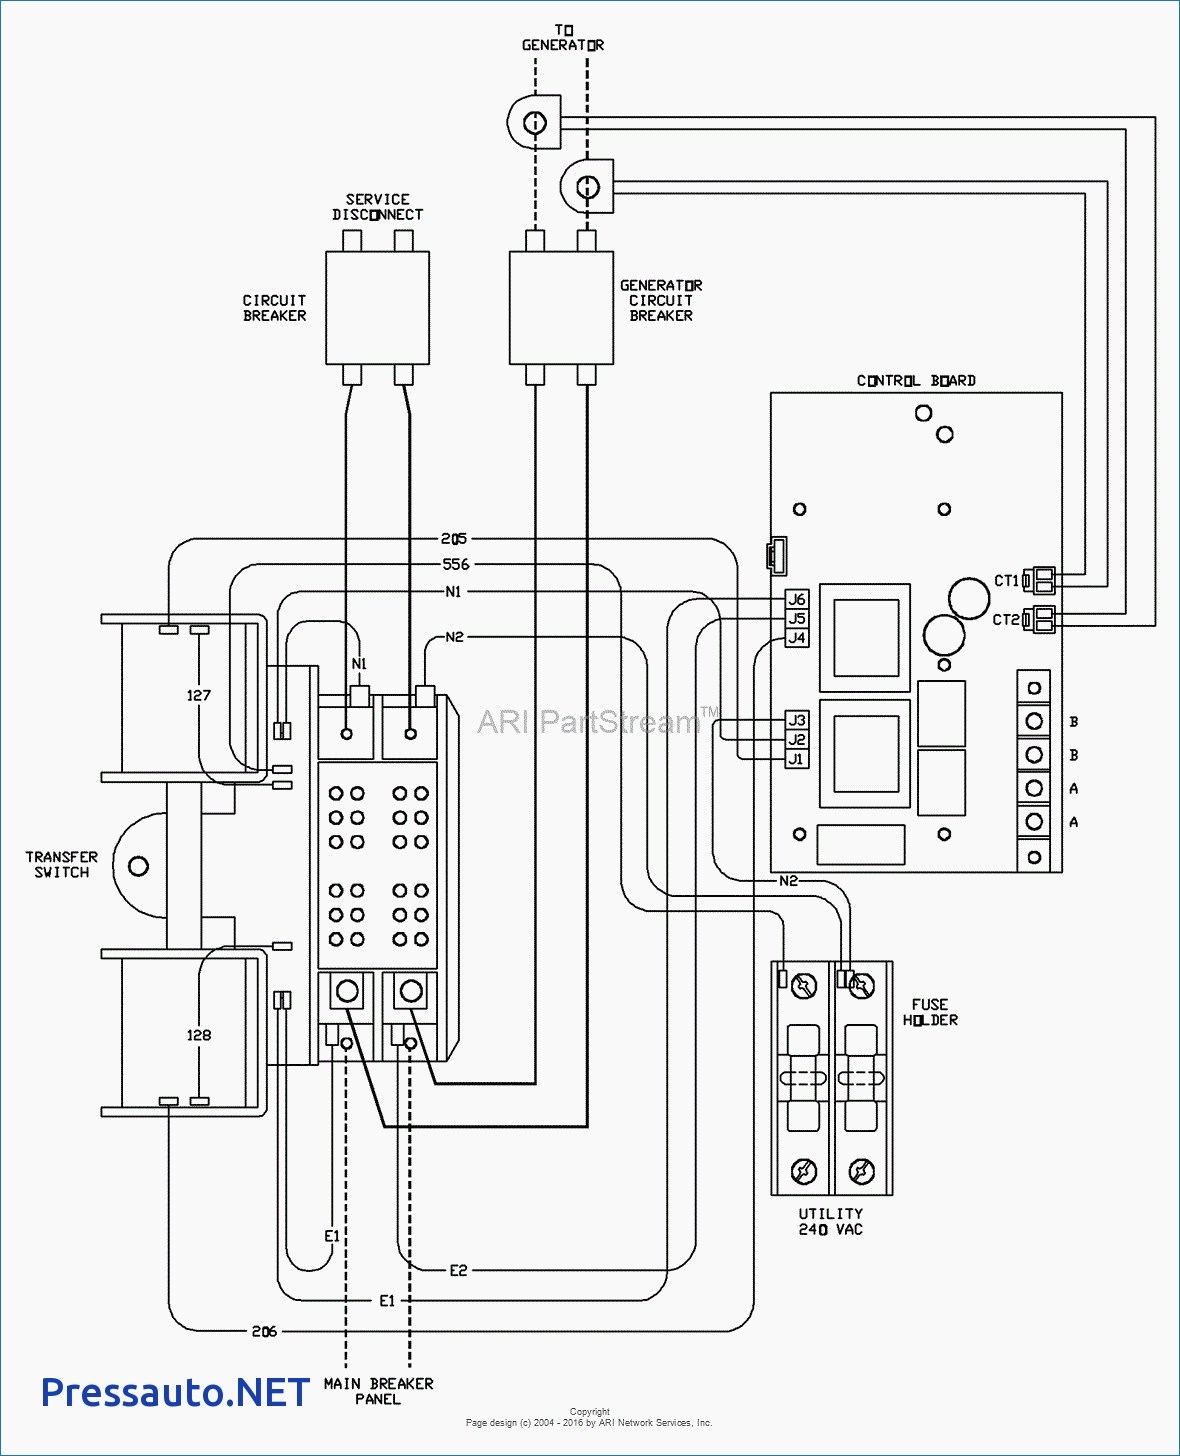 generac whole house transfer switch wiring diagram Collection-Whole House Generator Transfer Switch Wiring Diagram whole House Transfer Switch Wiring Diagram Beautiful Generator 3-j